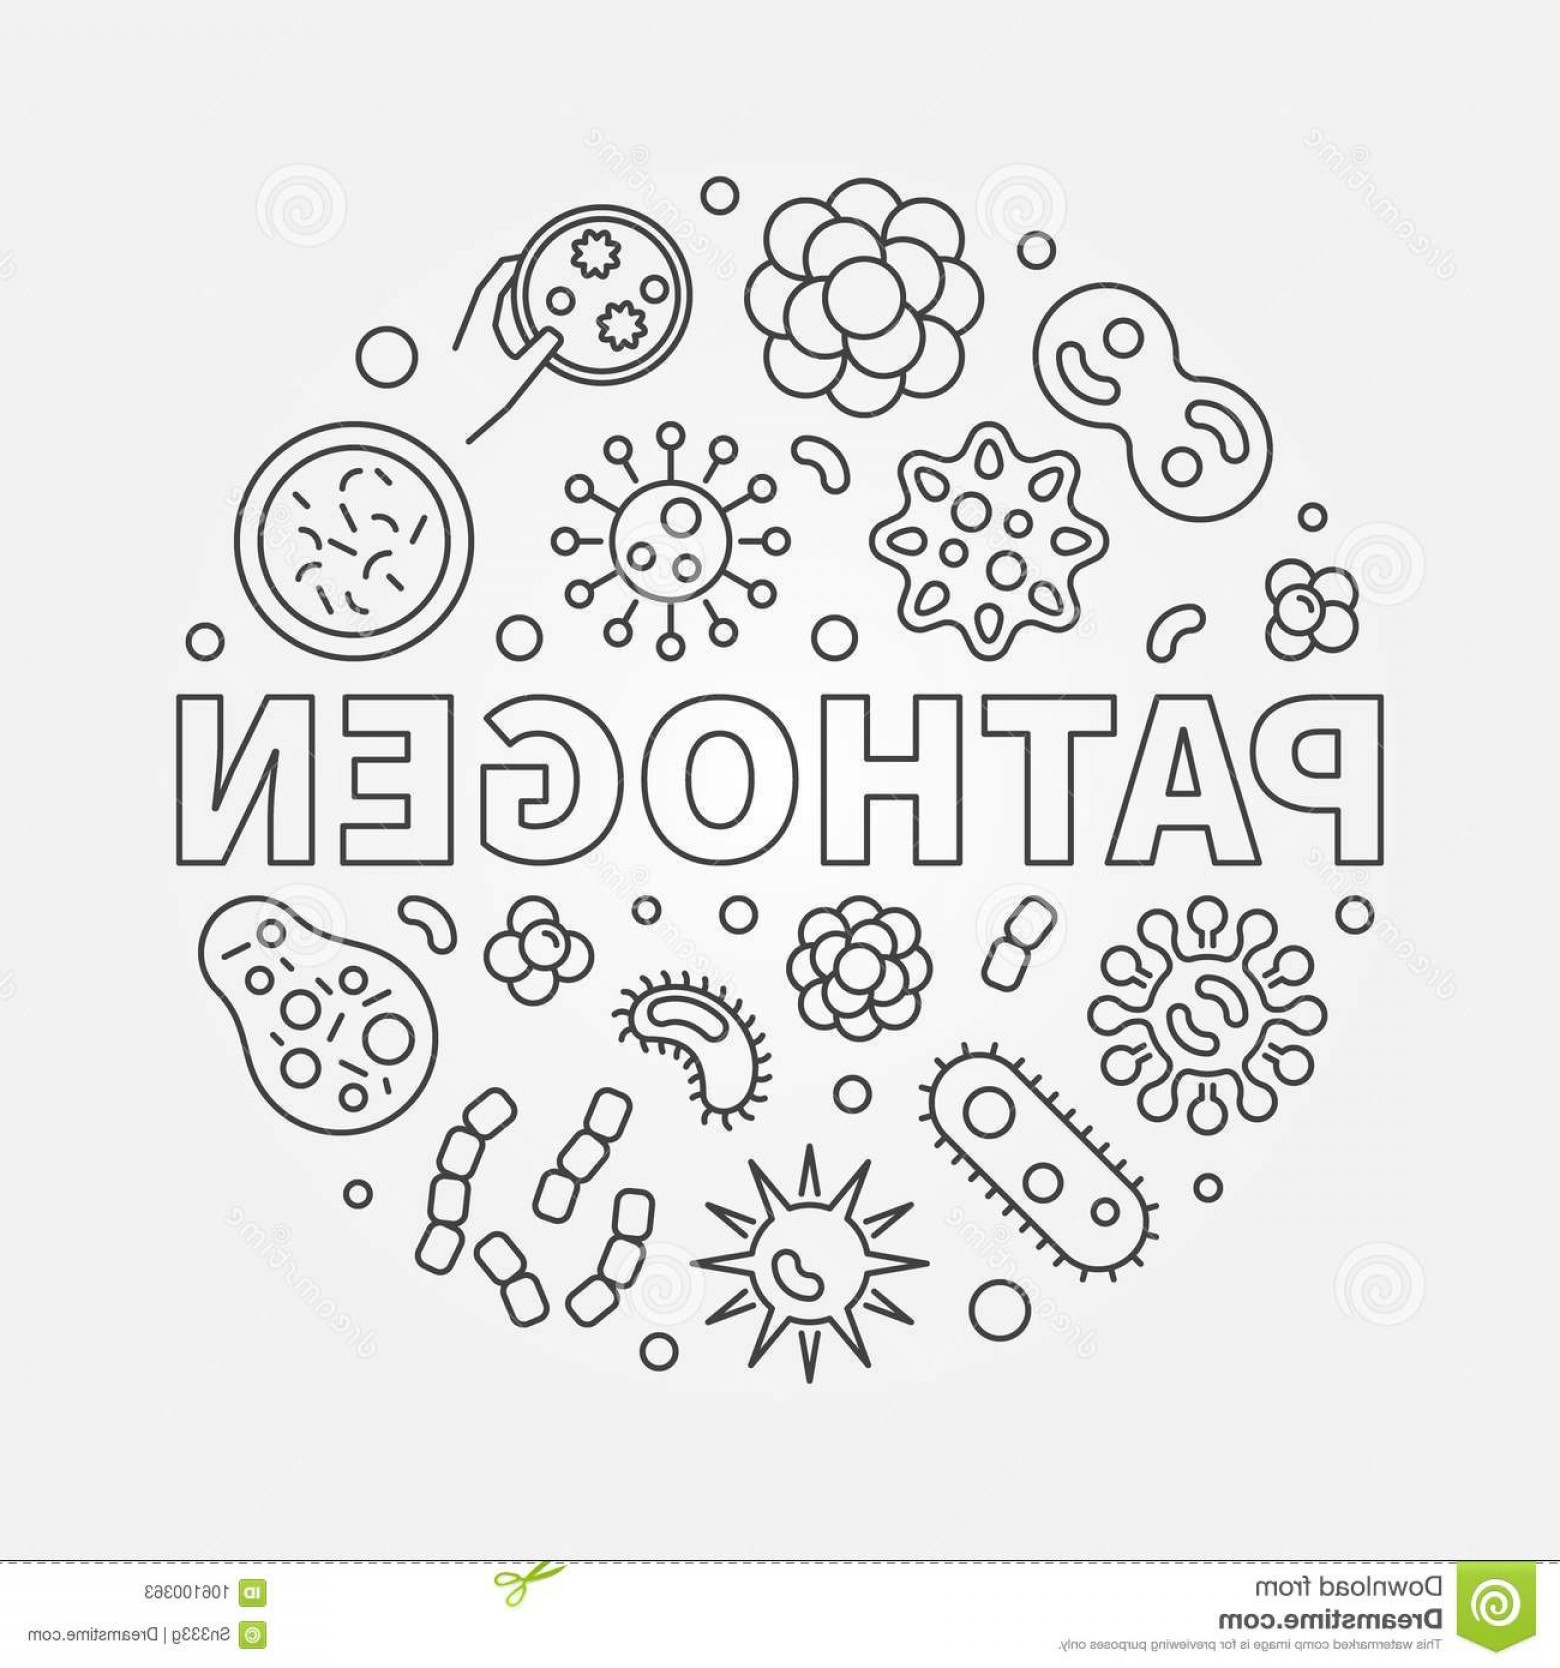 Vector Pathogen: Pathogen Round Illustration Vector Concept Circular Symbol Made Bad Bacteria Microbes Outline Icons Image